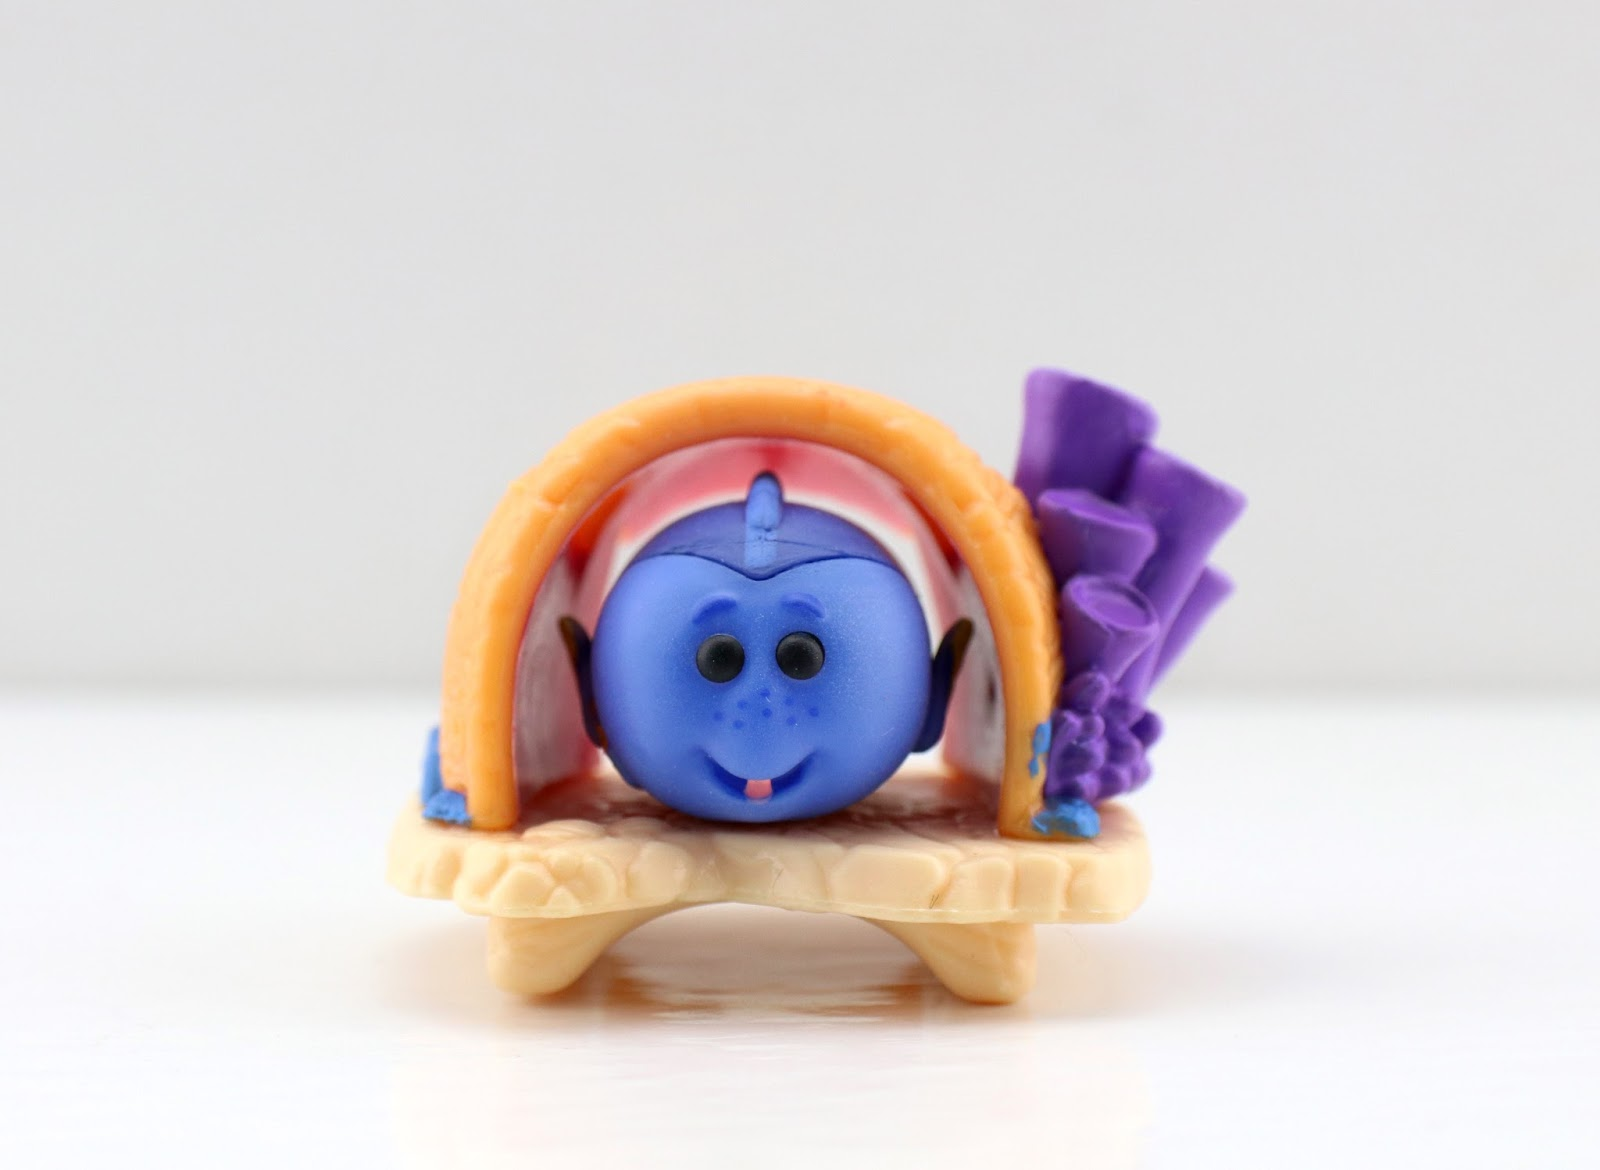 Disney Tsum Tsum Mystery Stack Packs by Jakks Pacific series 10 dory